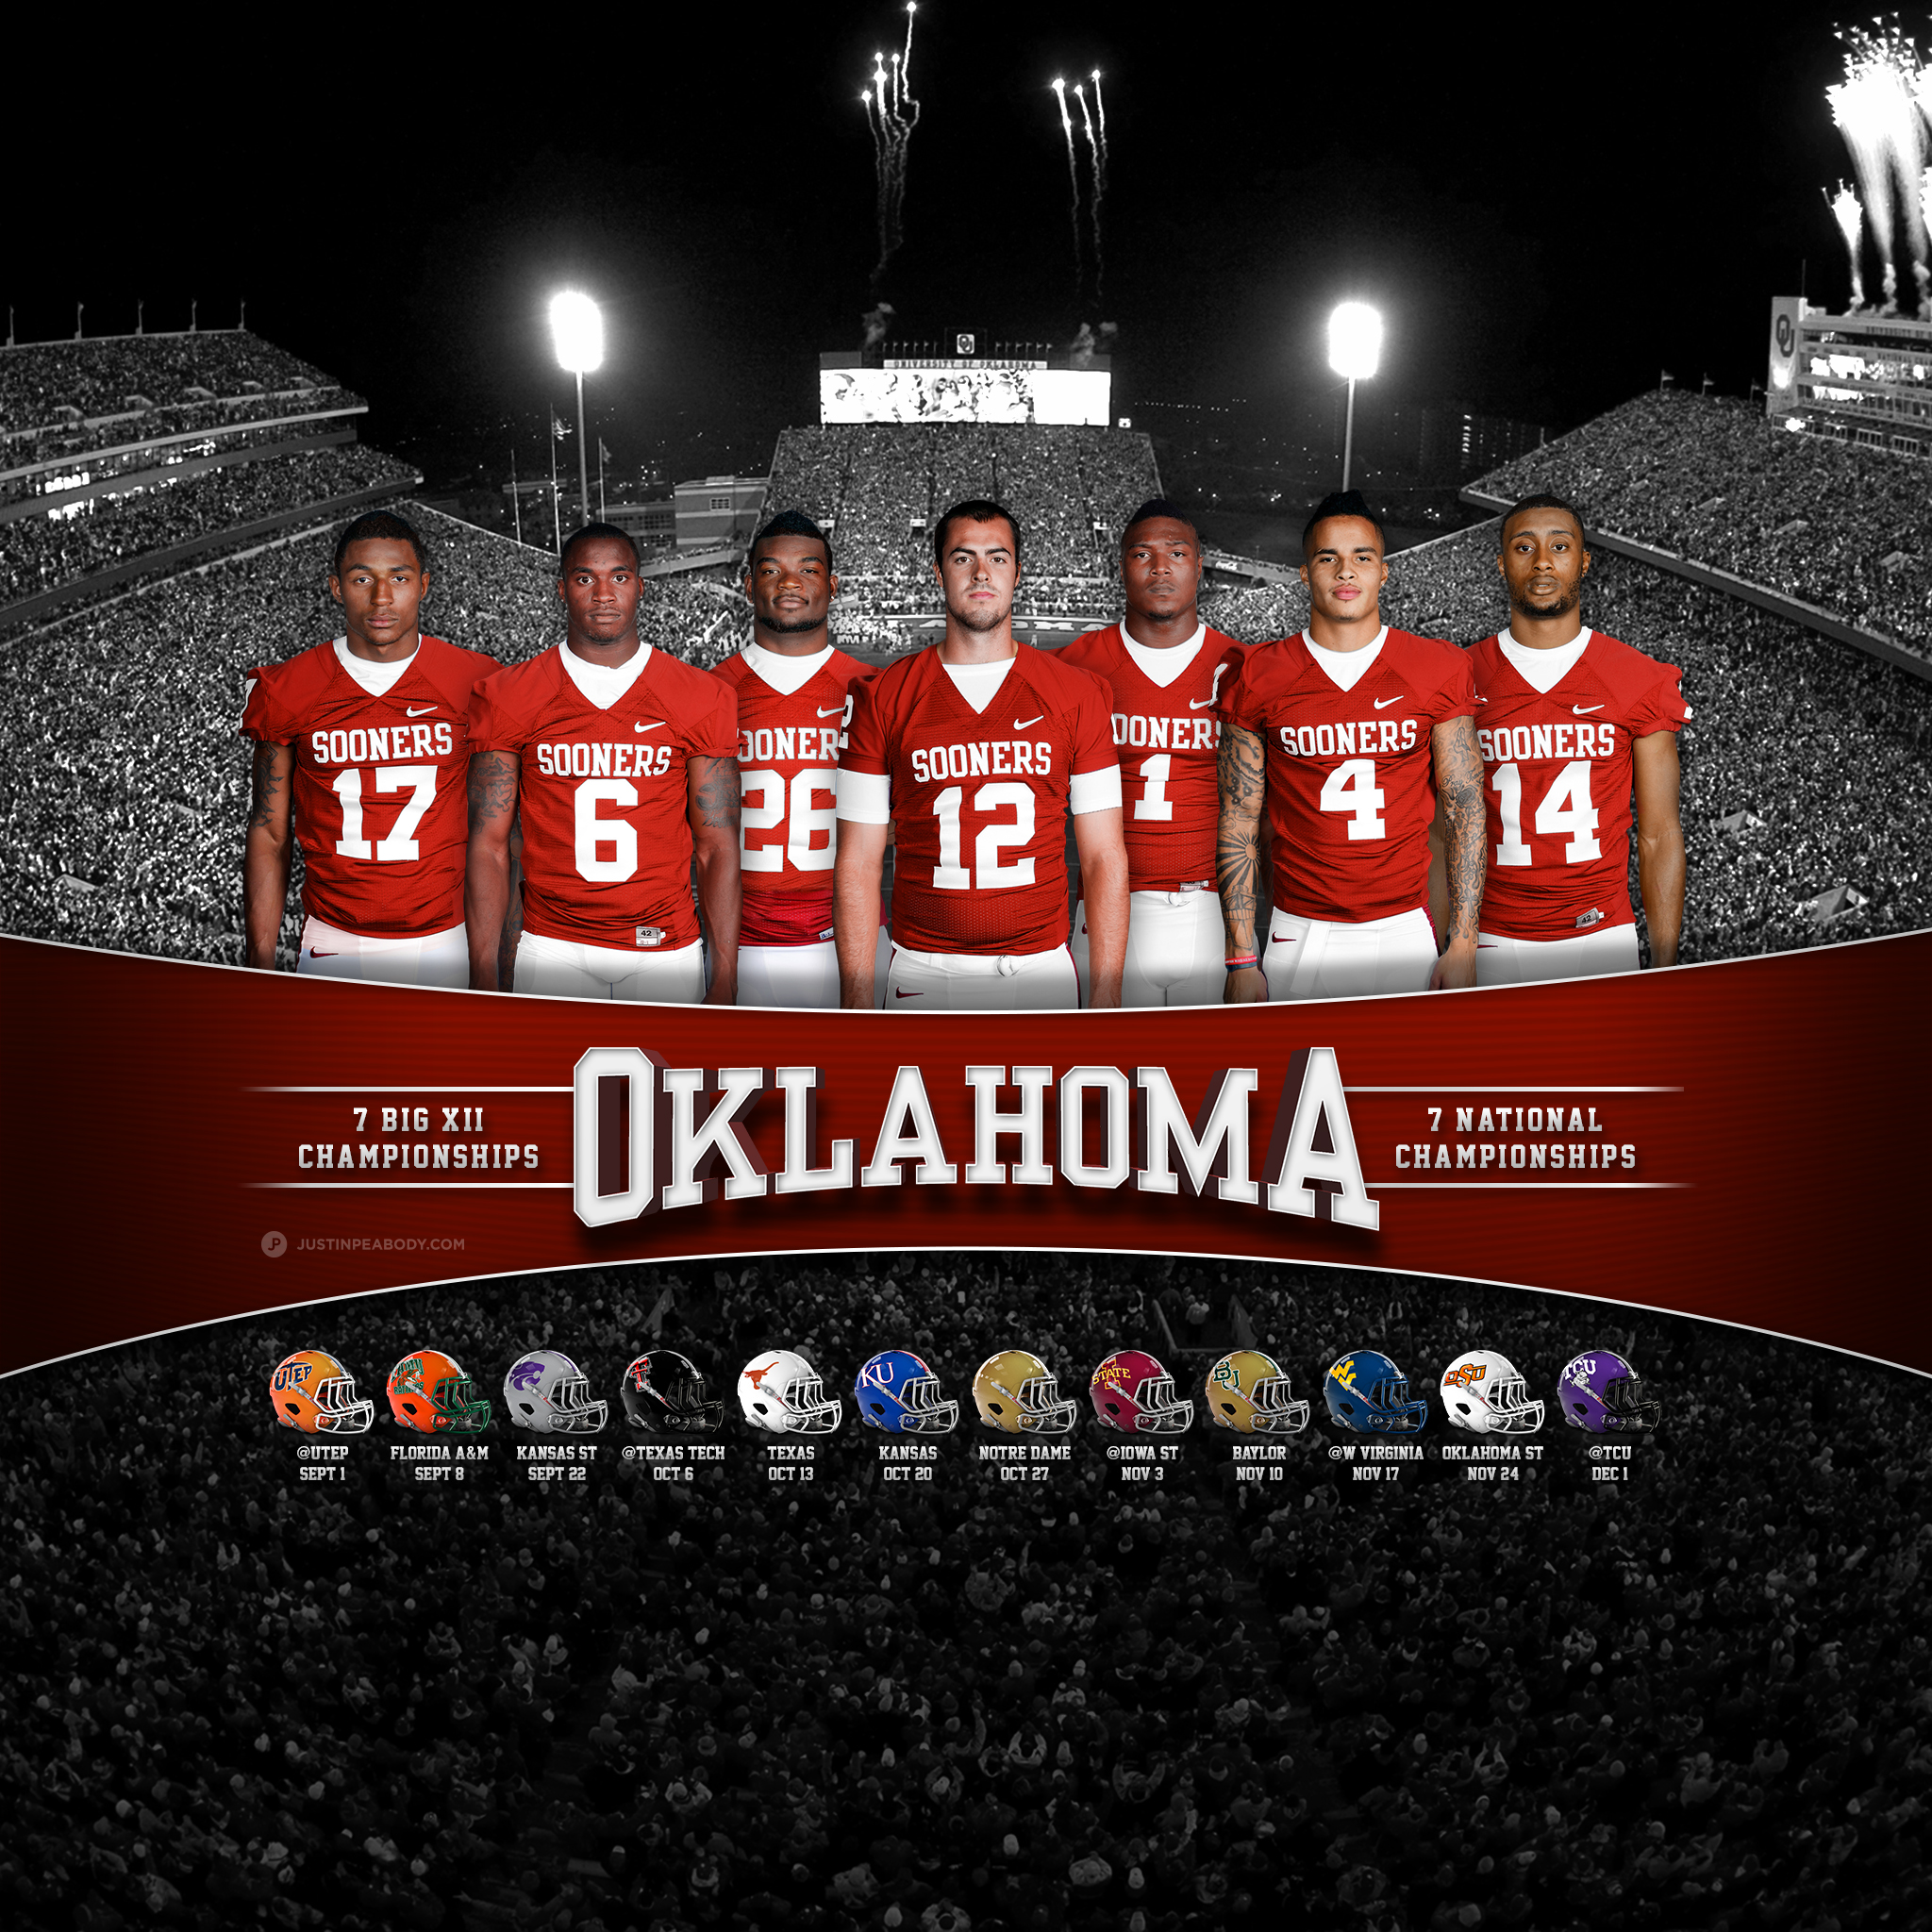 Oklahoma Sooners Football Wallpaper 2013   Viewing Gallery 2048x2048